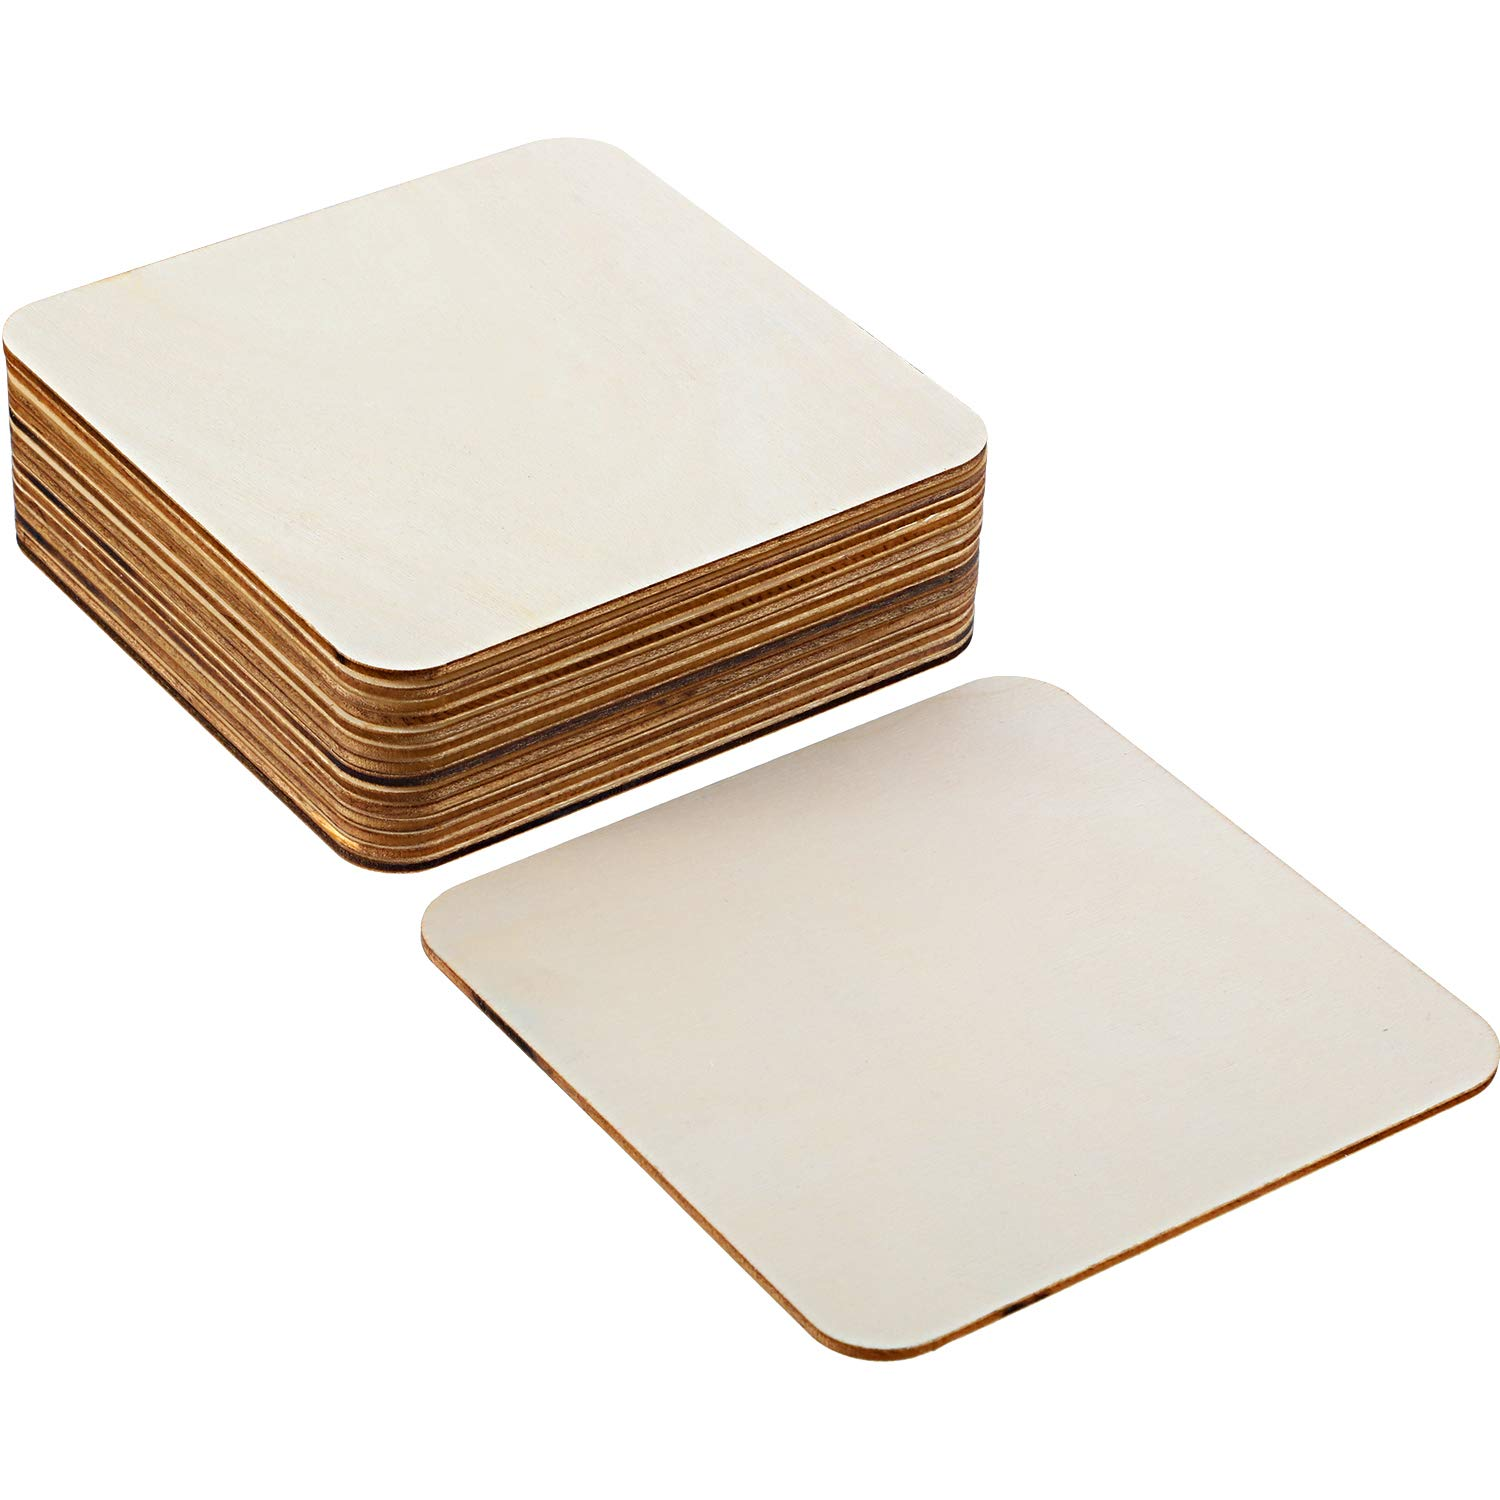 Boao Blank Wood Squares Wood Pieces Unfinished Round Corner Square Wooden Cutouts for DIY Arts Craft Project, Decoration, Laser Engraving Carving (3 x 3 Inch, 36 Pieces)